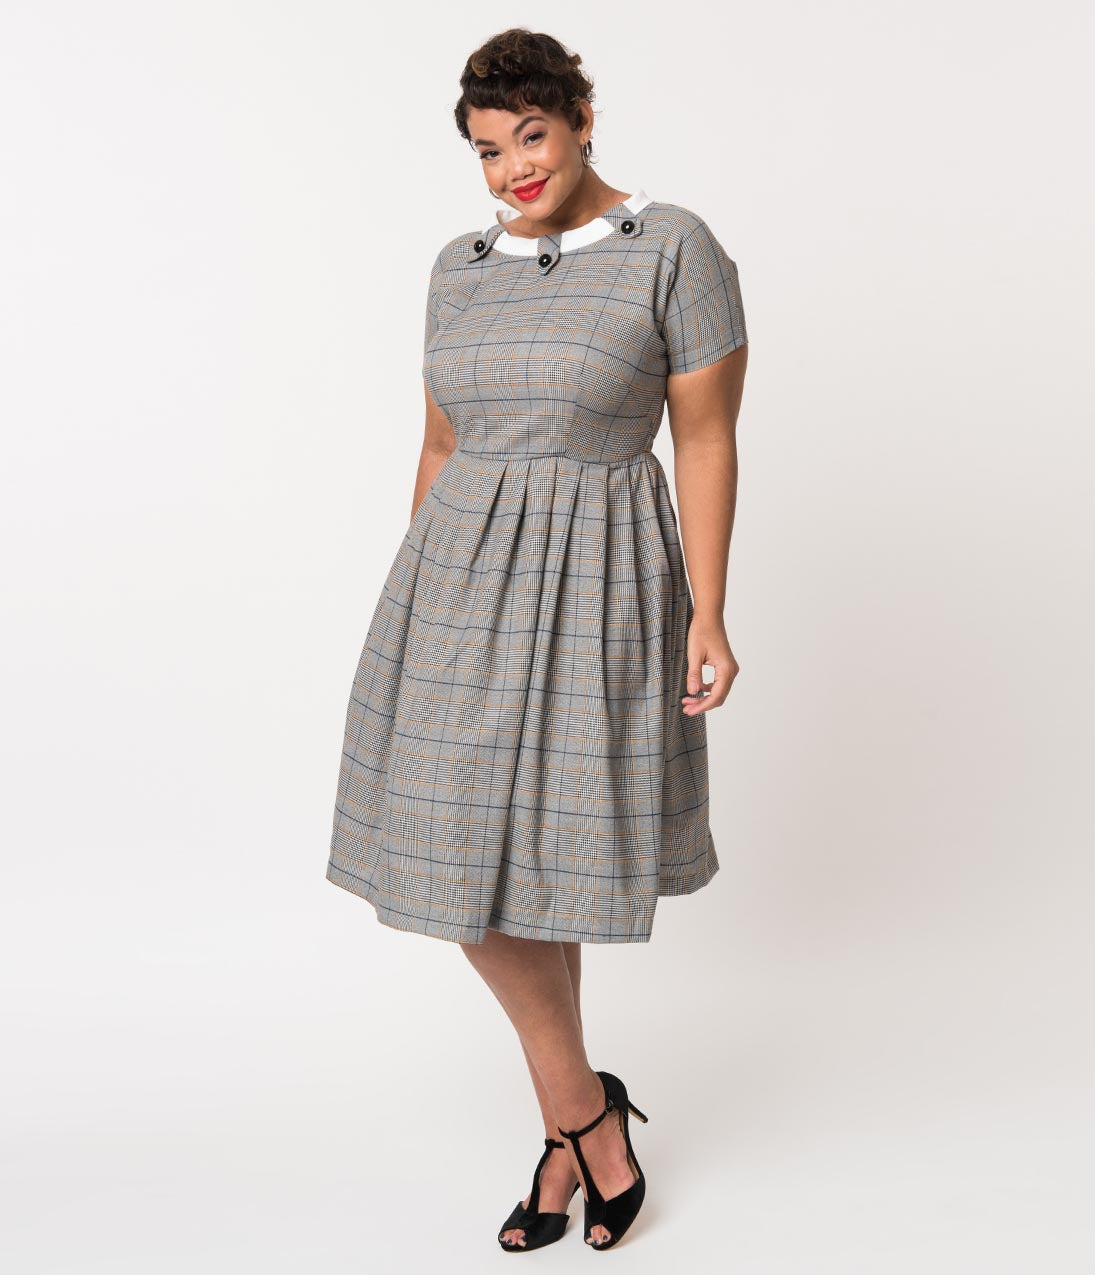 1960s Dresses | 60s Dresses Mod, Mini, Jackie O, Hippie Plus Size Retro Style Grey Plaid Check Short Sleeve Beatrice Swing Dress $93.00 AT vintagedancer.com